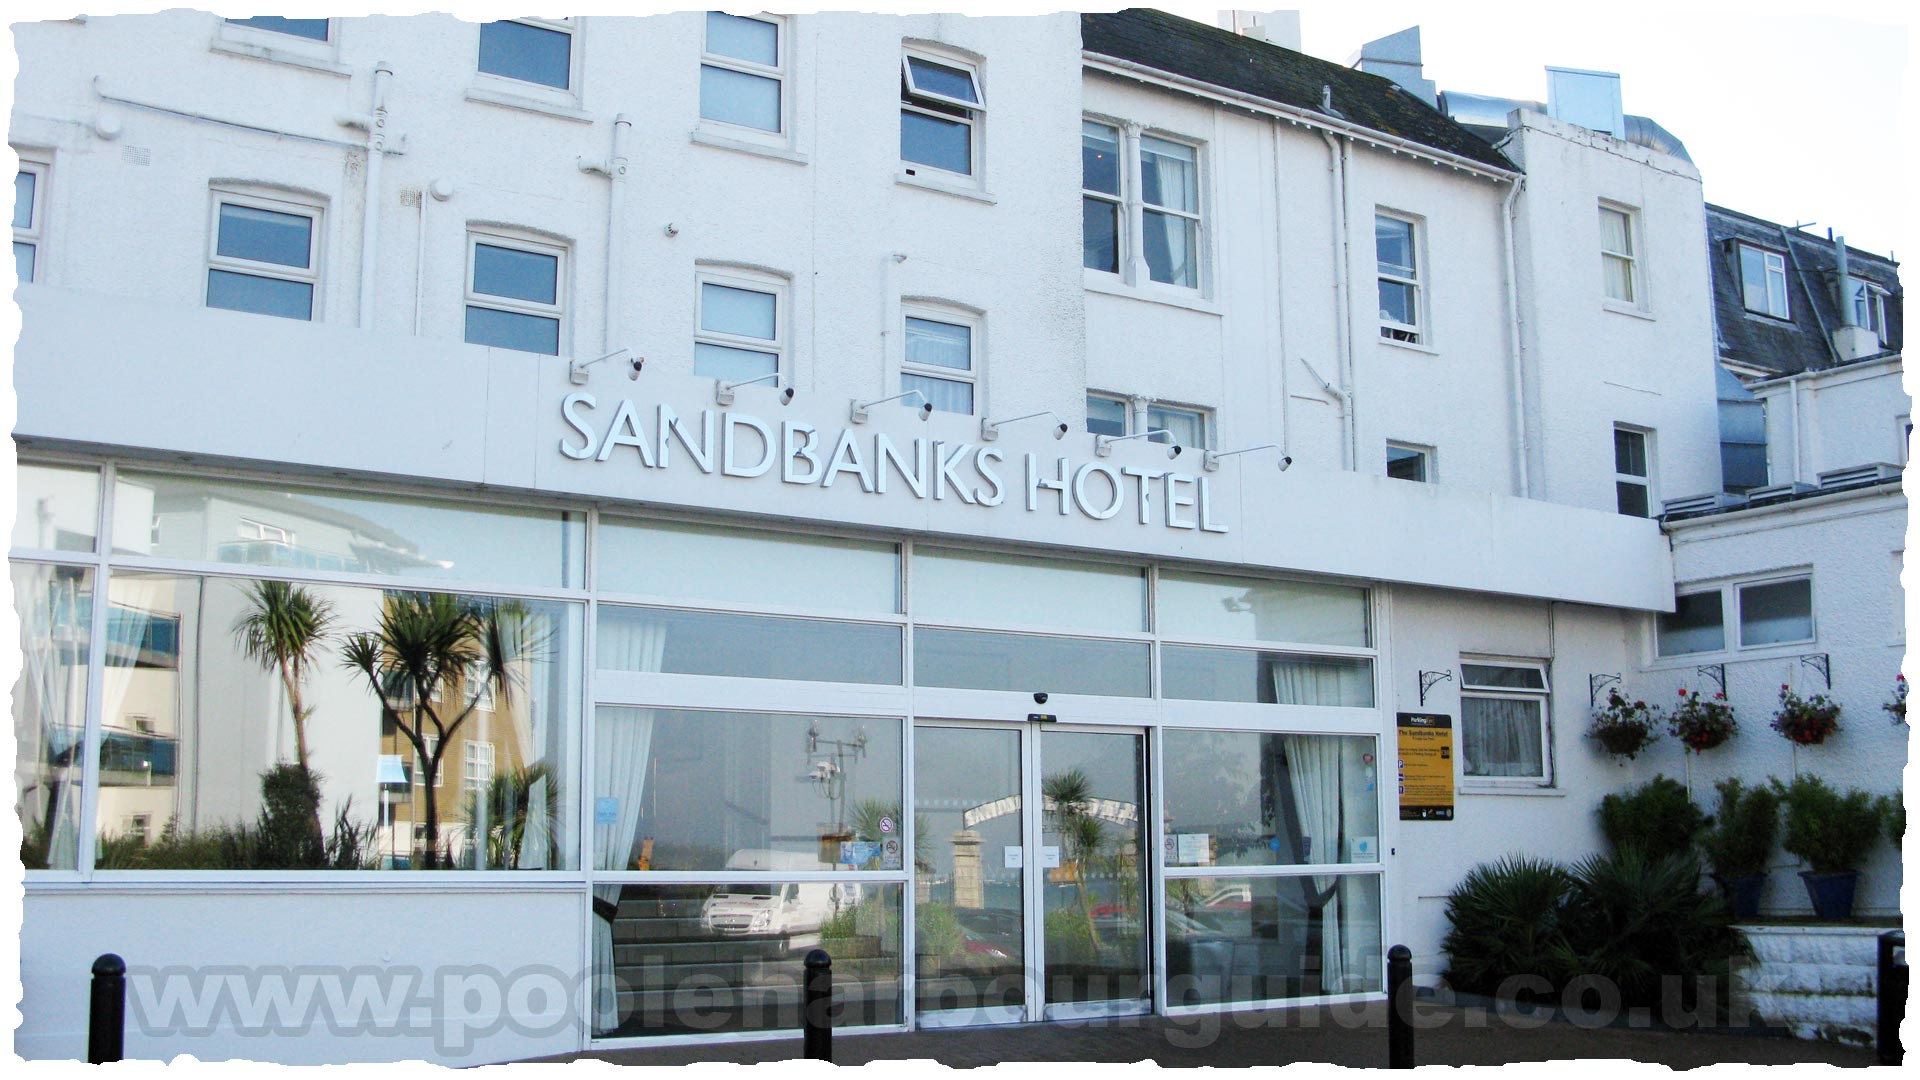 Hotels Near Sandbanks Poole